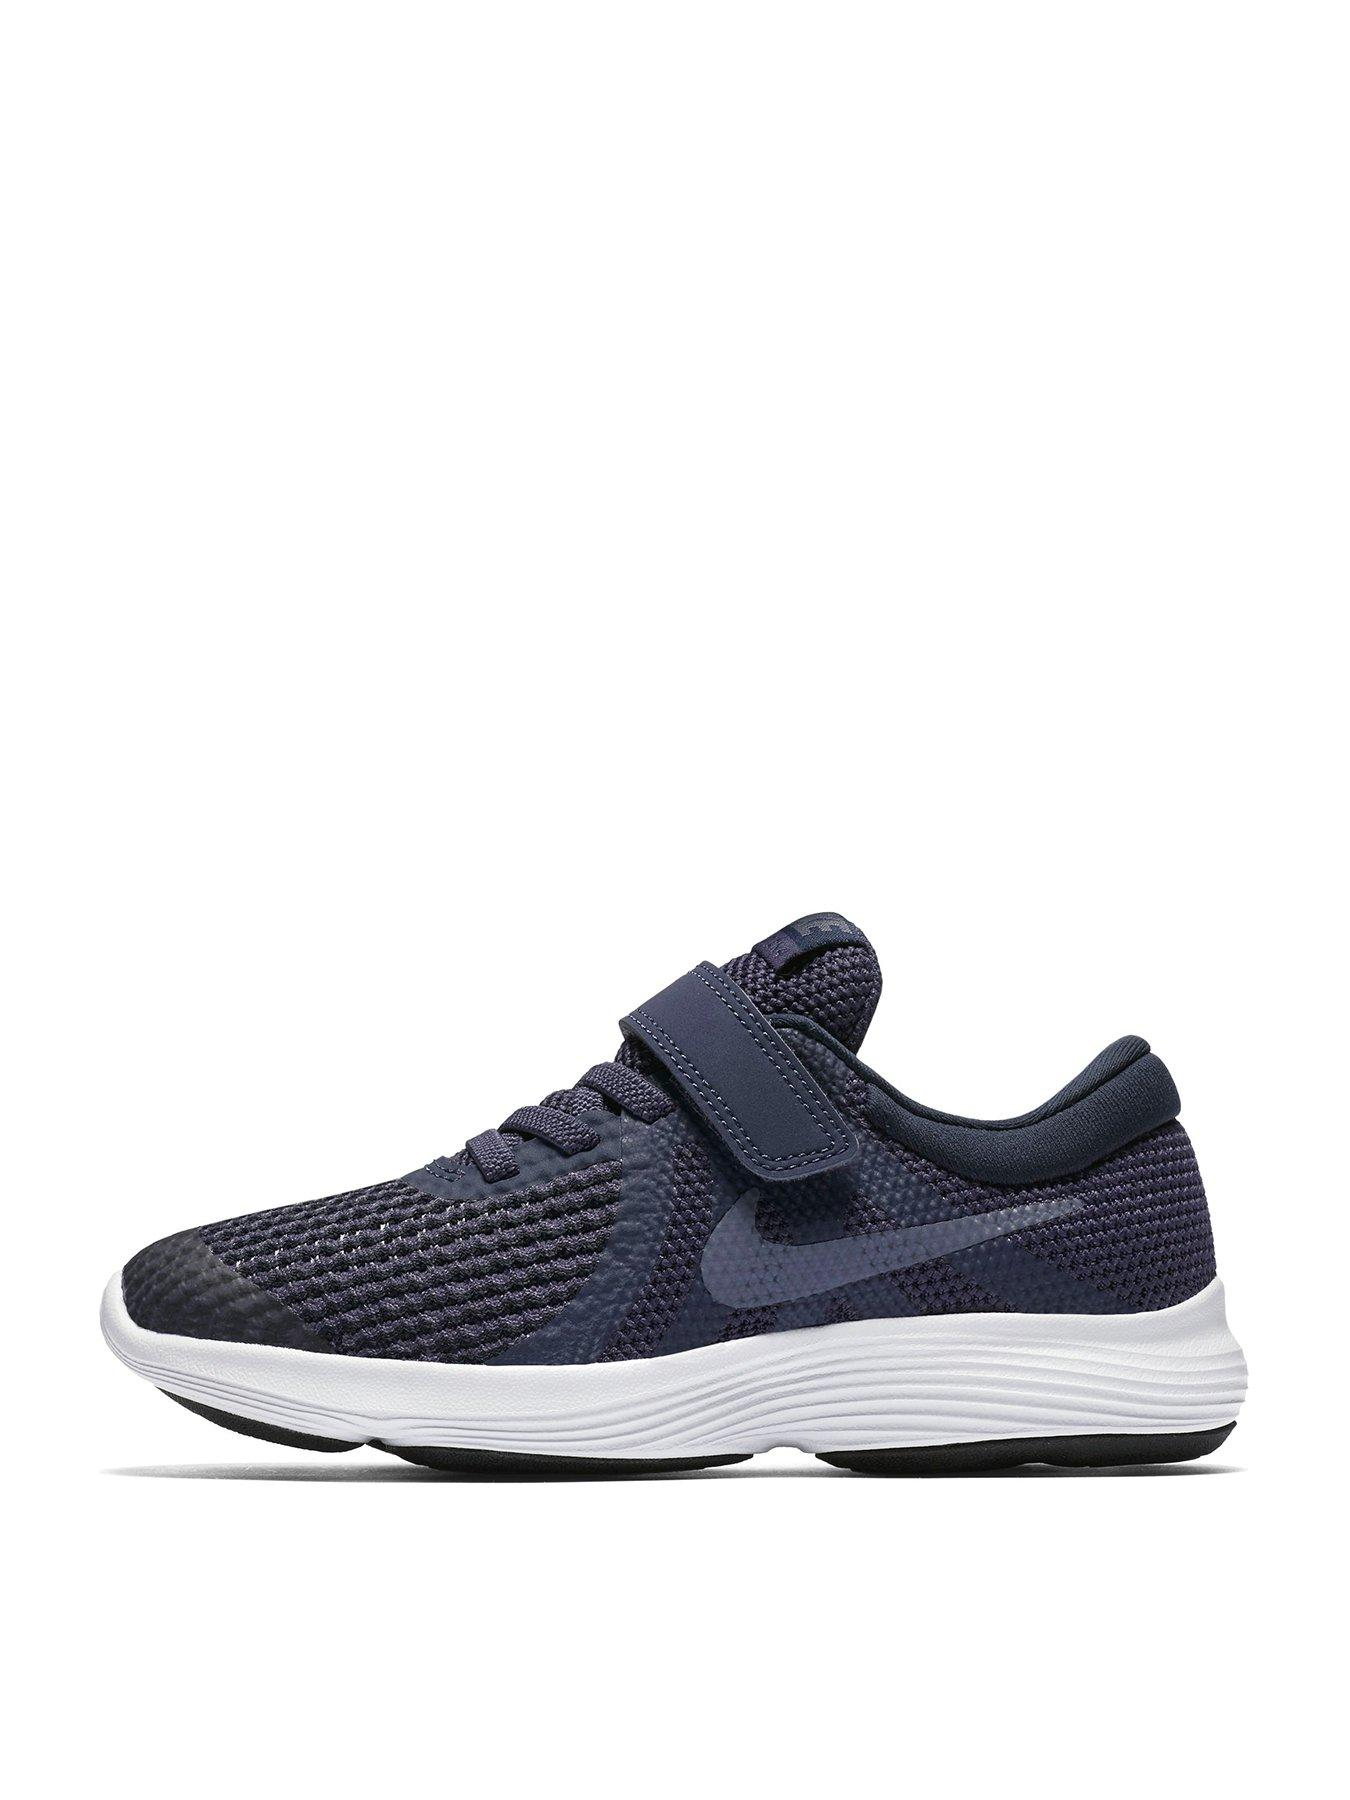 Nike Revolution 4 Childrens Trainer